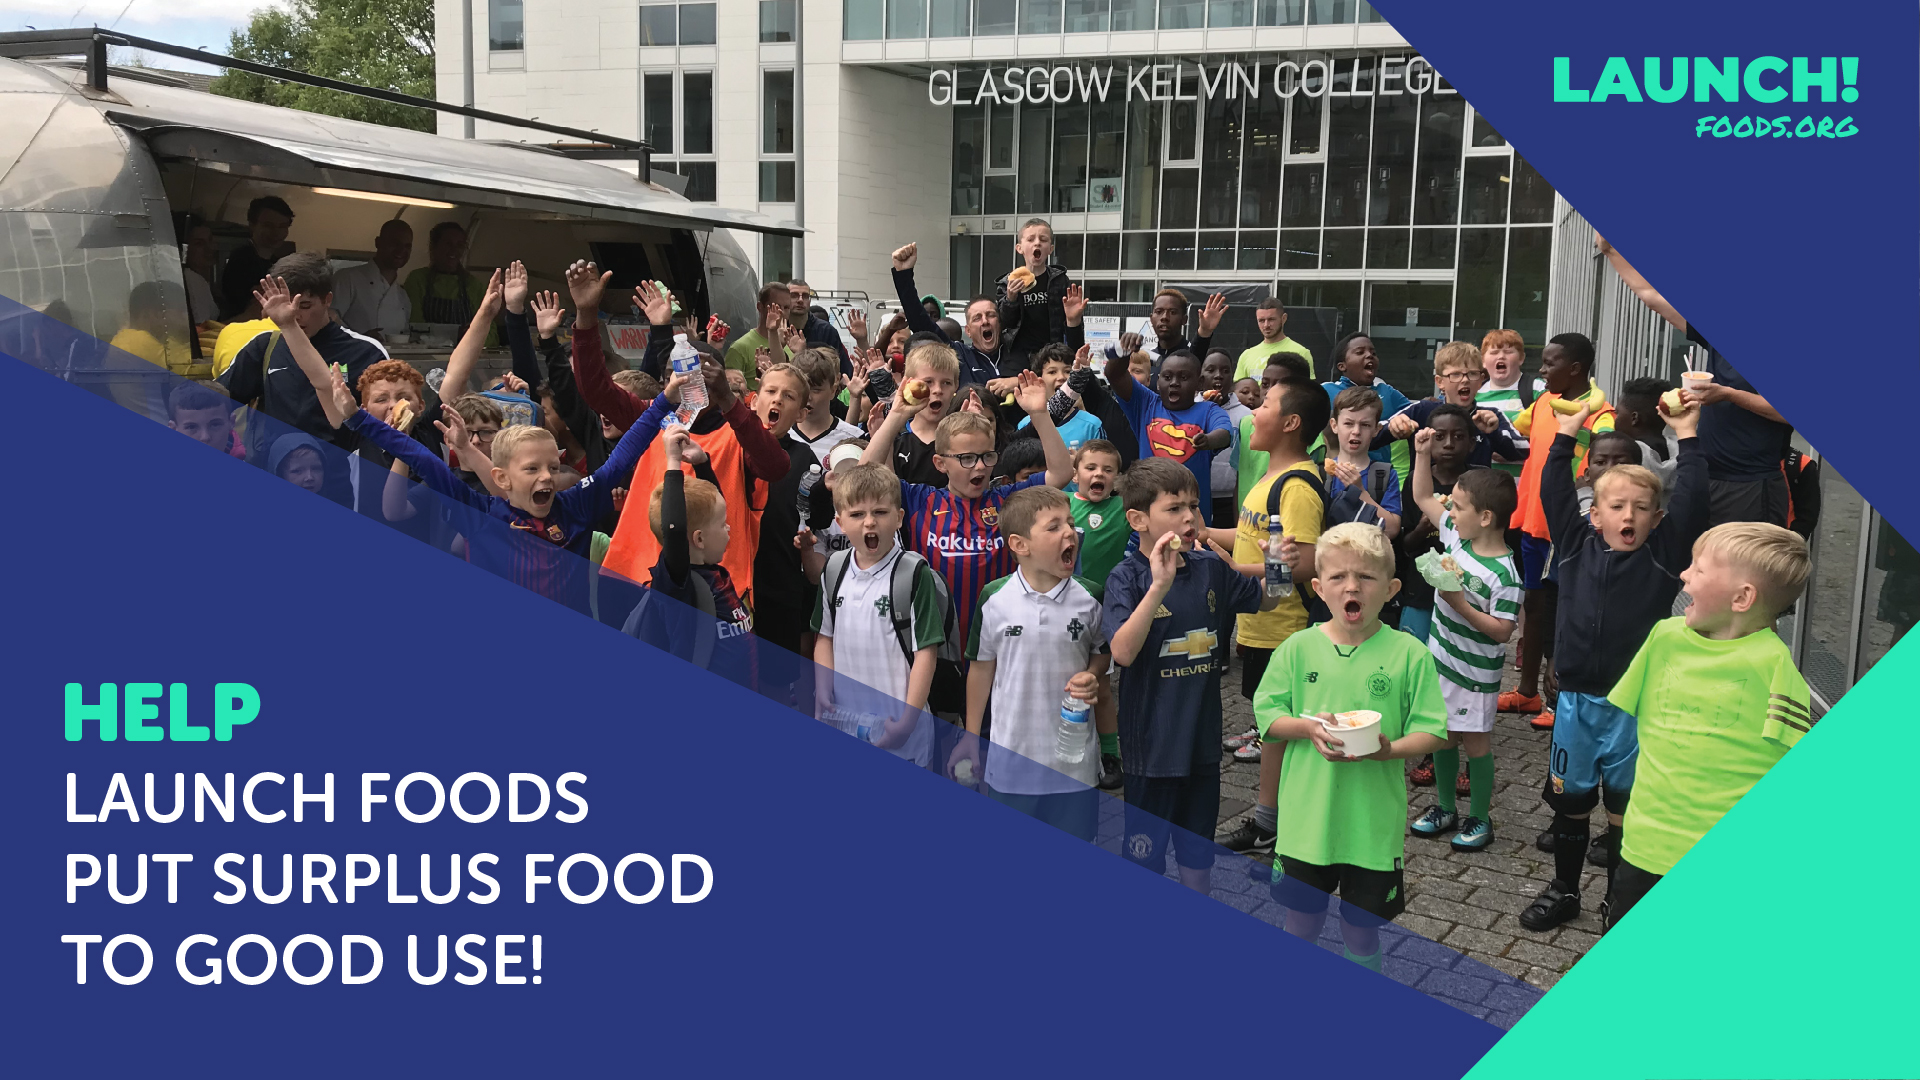 Appeal for volunteers to help Launch Foods…